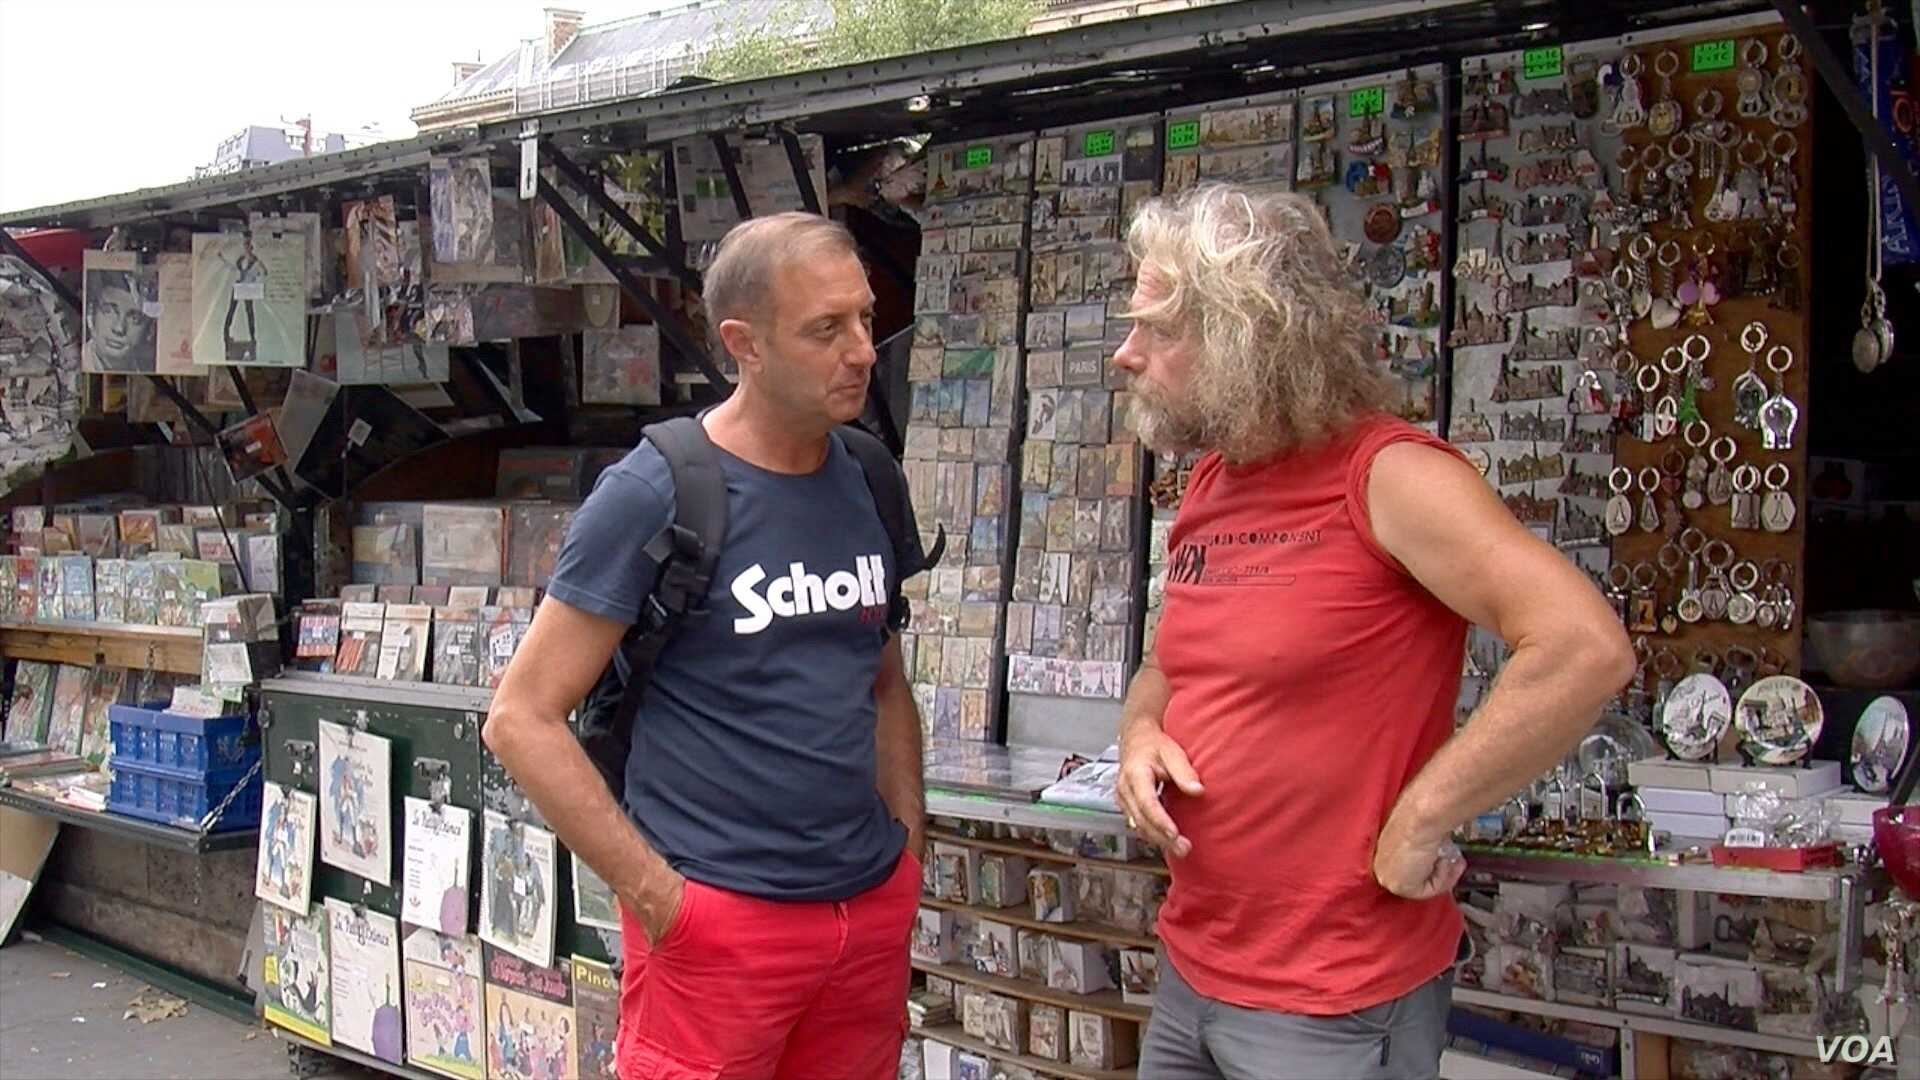 Bouquiniste Francis Robert, right, is against the UNESCO bid, fearing it will end his ability to sell the souvenirs he says he needs to survive.